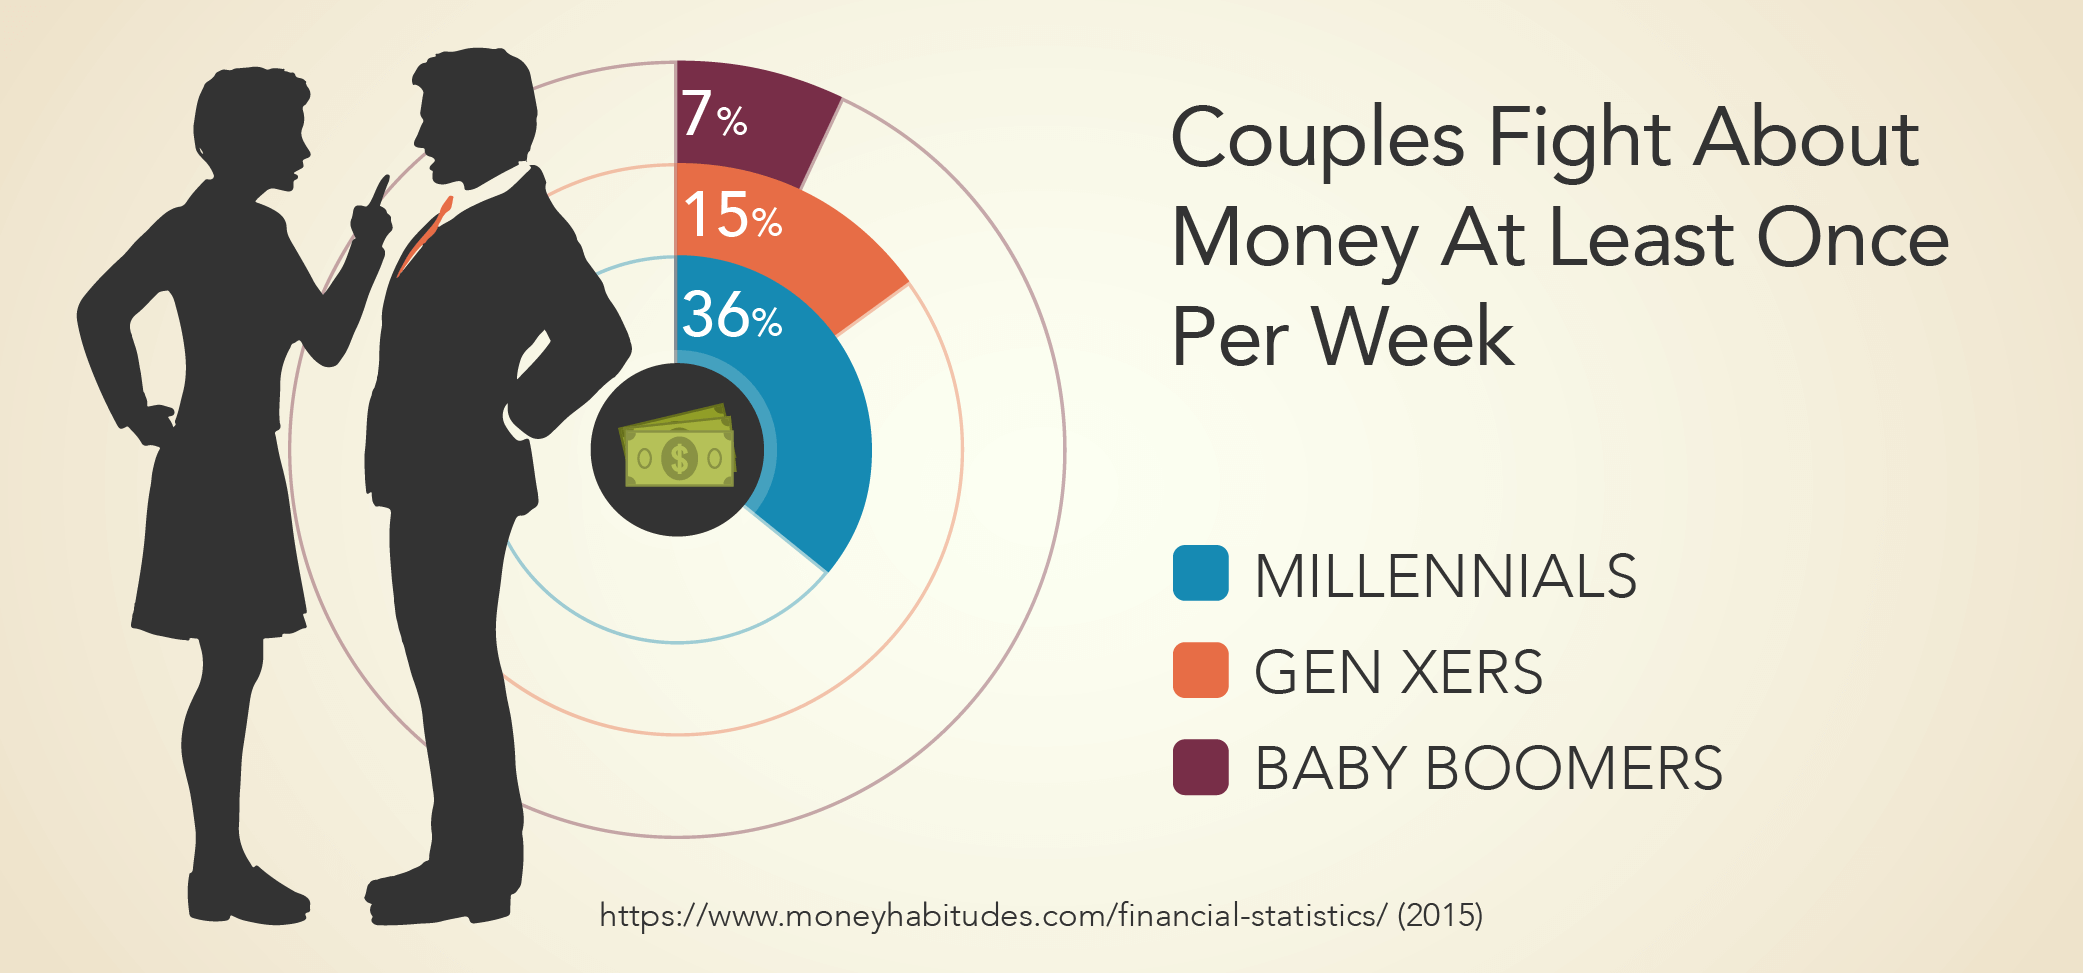 Couples Fight About Money At Least Once Per Week